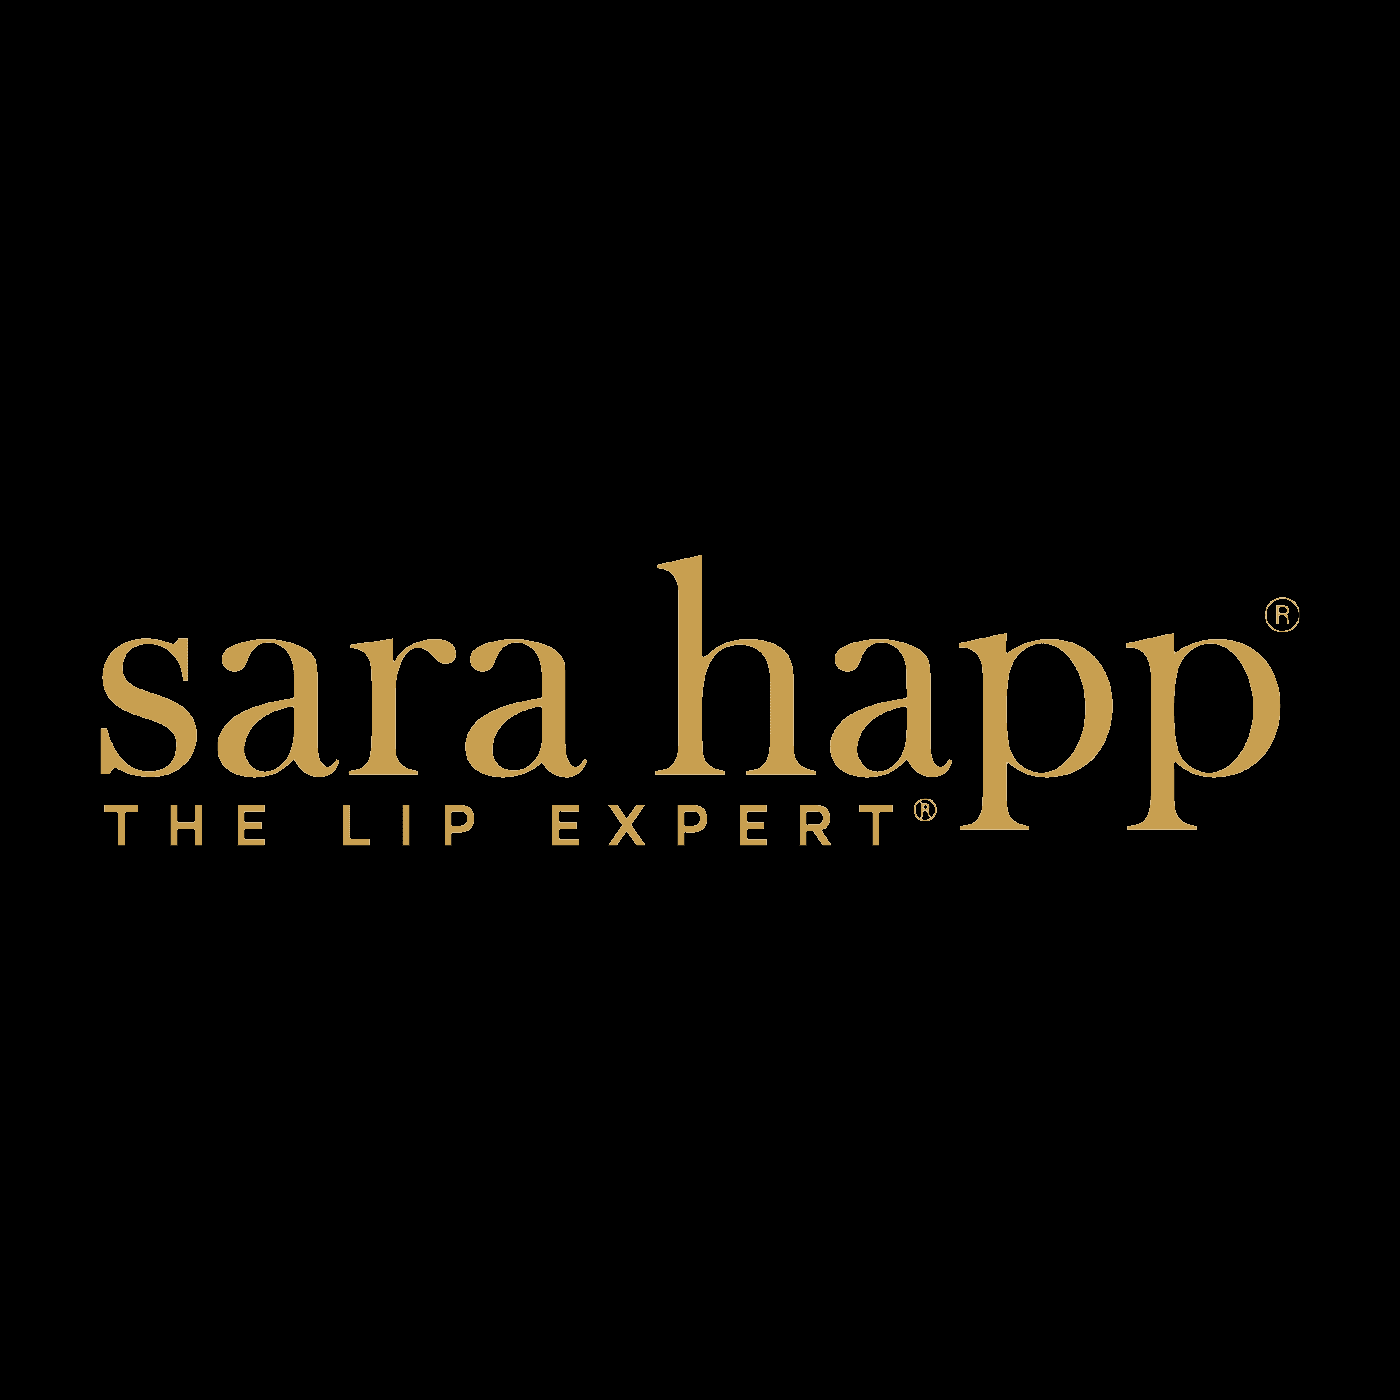 New Customers -Sign Up for Sara Happ Emails and Save 20%